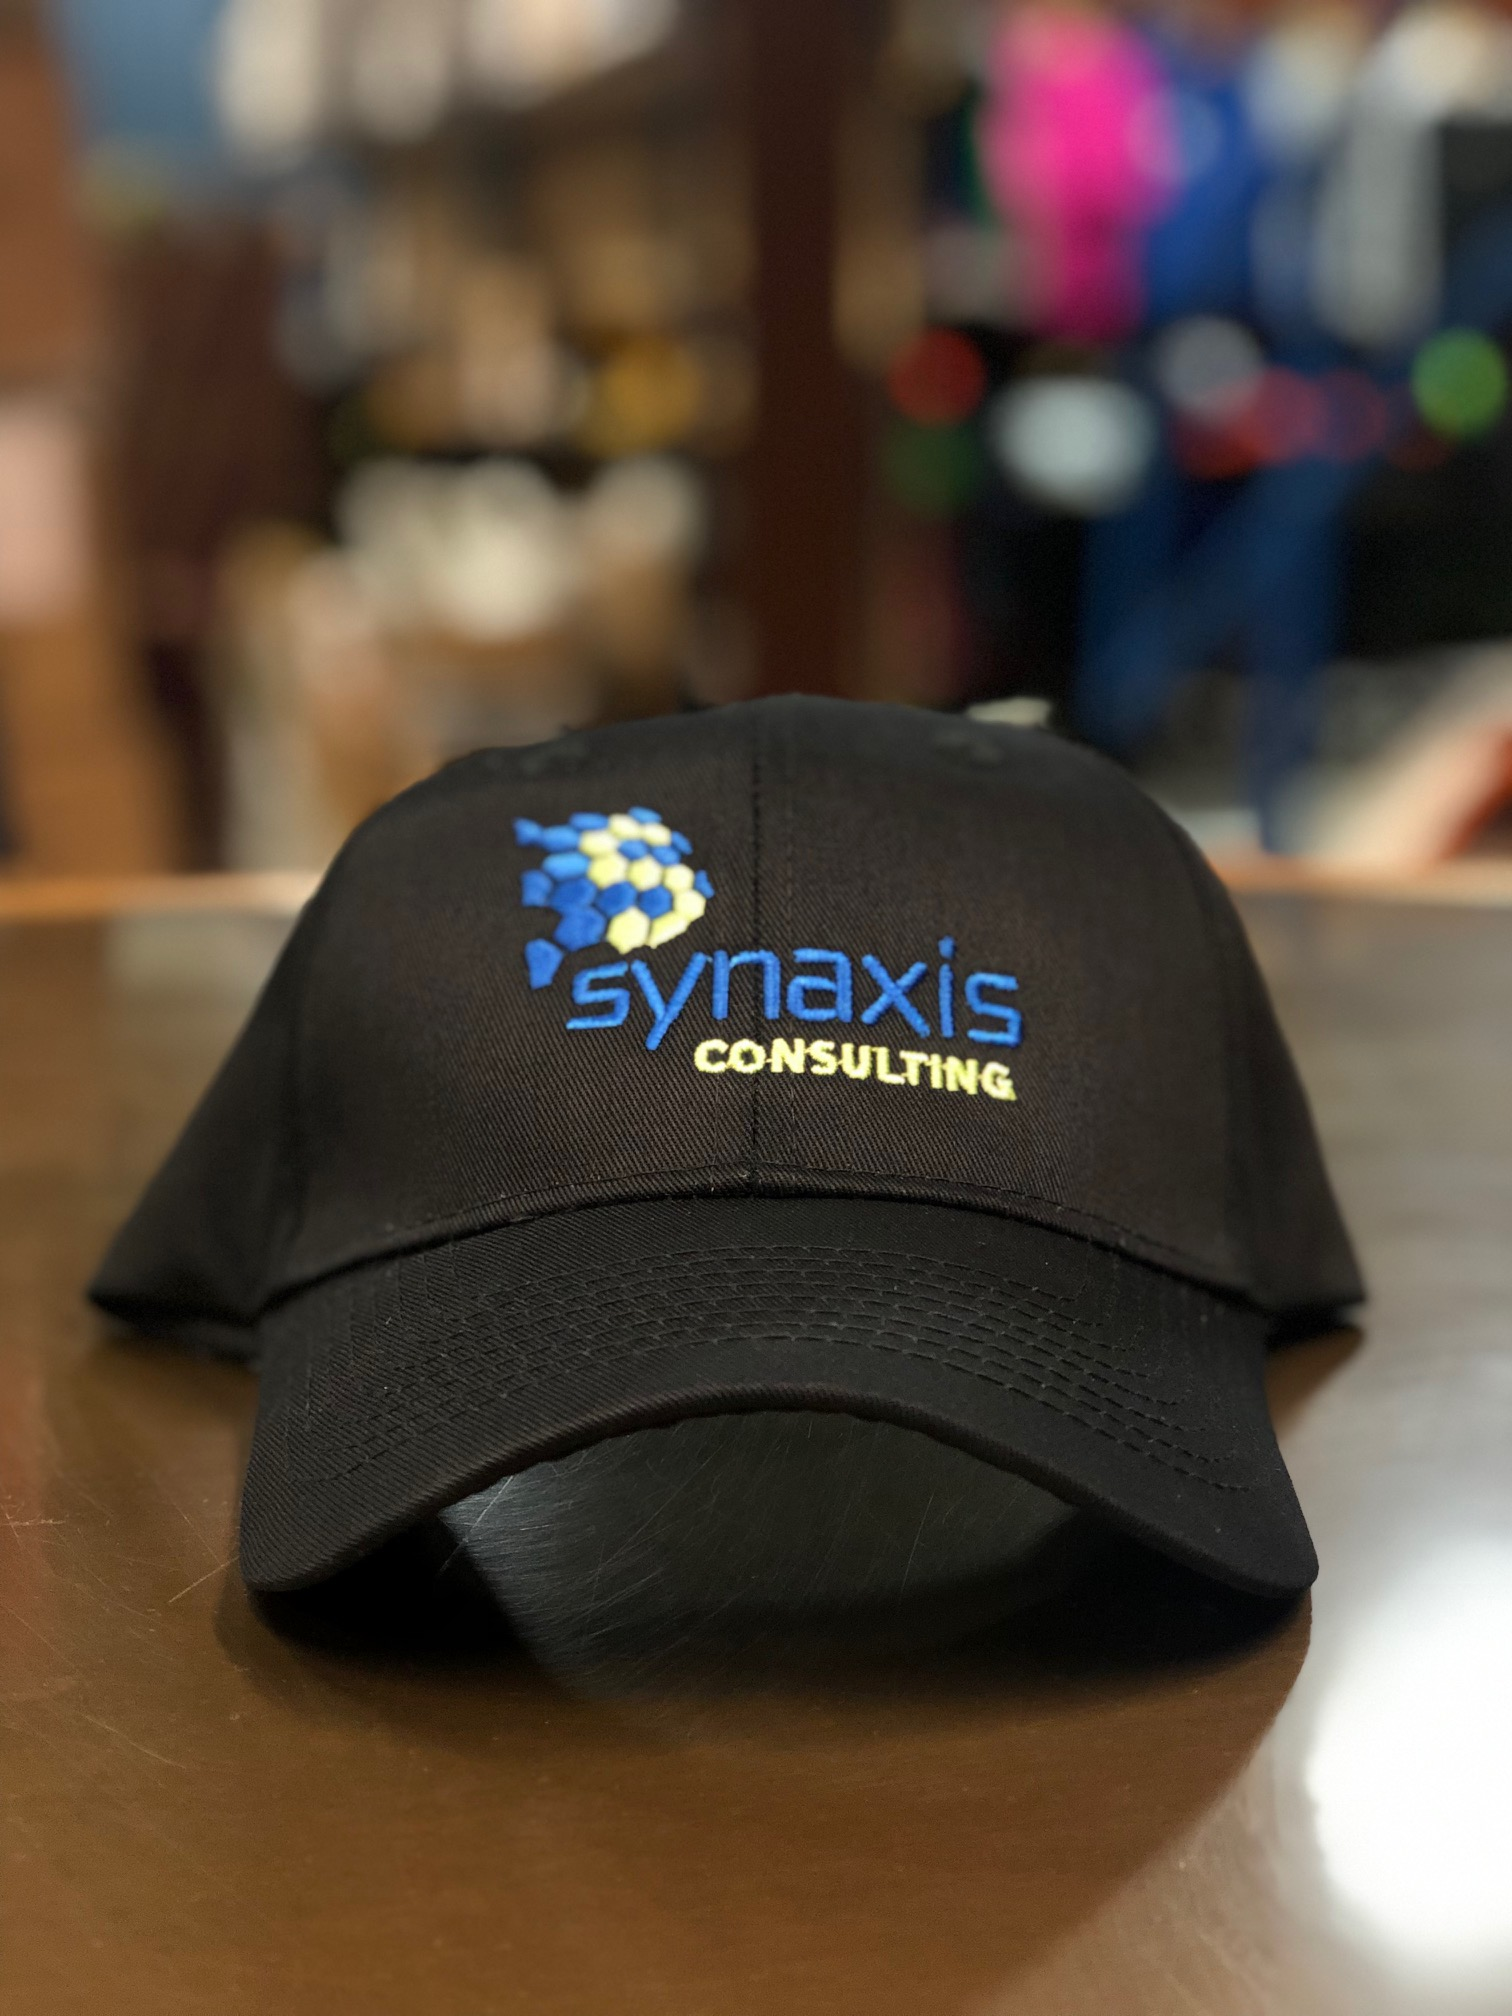 logounltd_laser_etching_embroidery_screen_printing_apparel_uniform_custom_tshirts_kirkland_bellevue_seattle_redmond_woodinville_branded_merchandise_promotional_products_logo_unltd_hat_synaxes.jpg